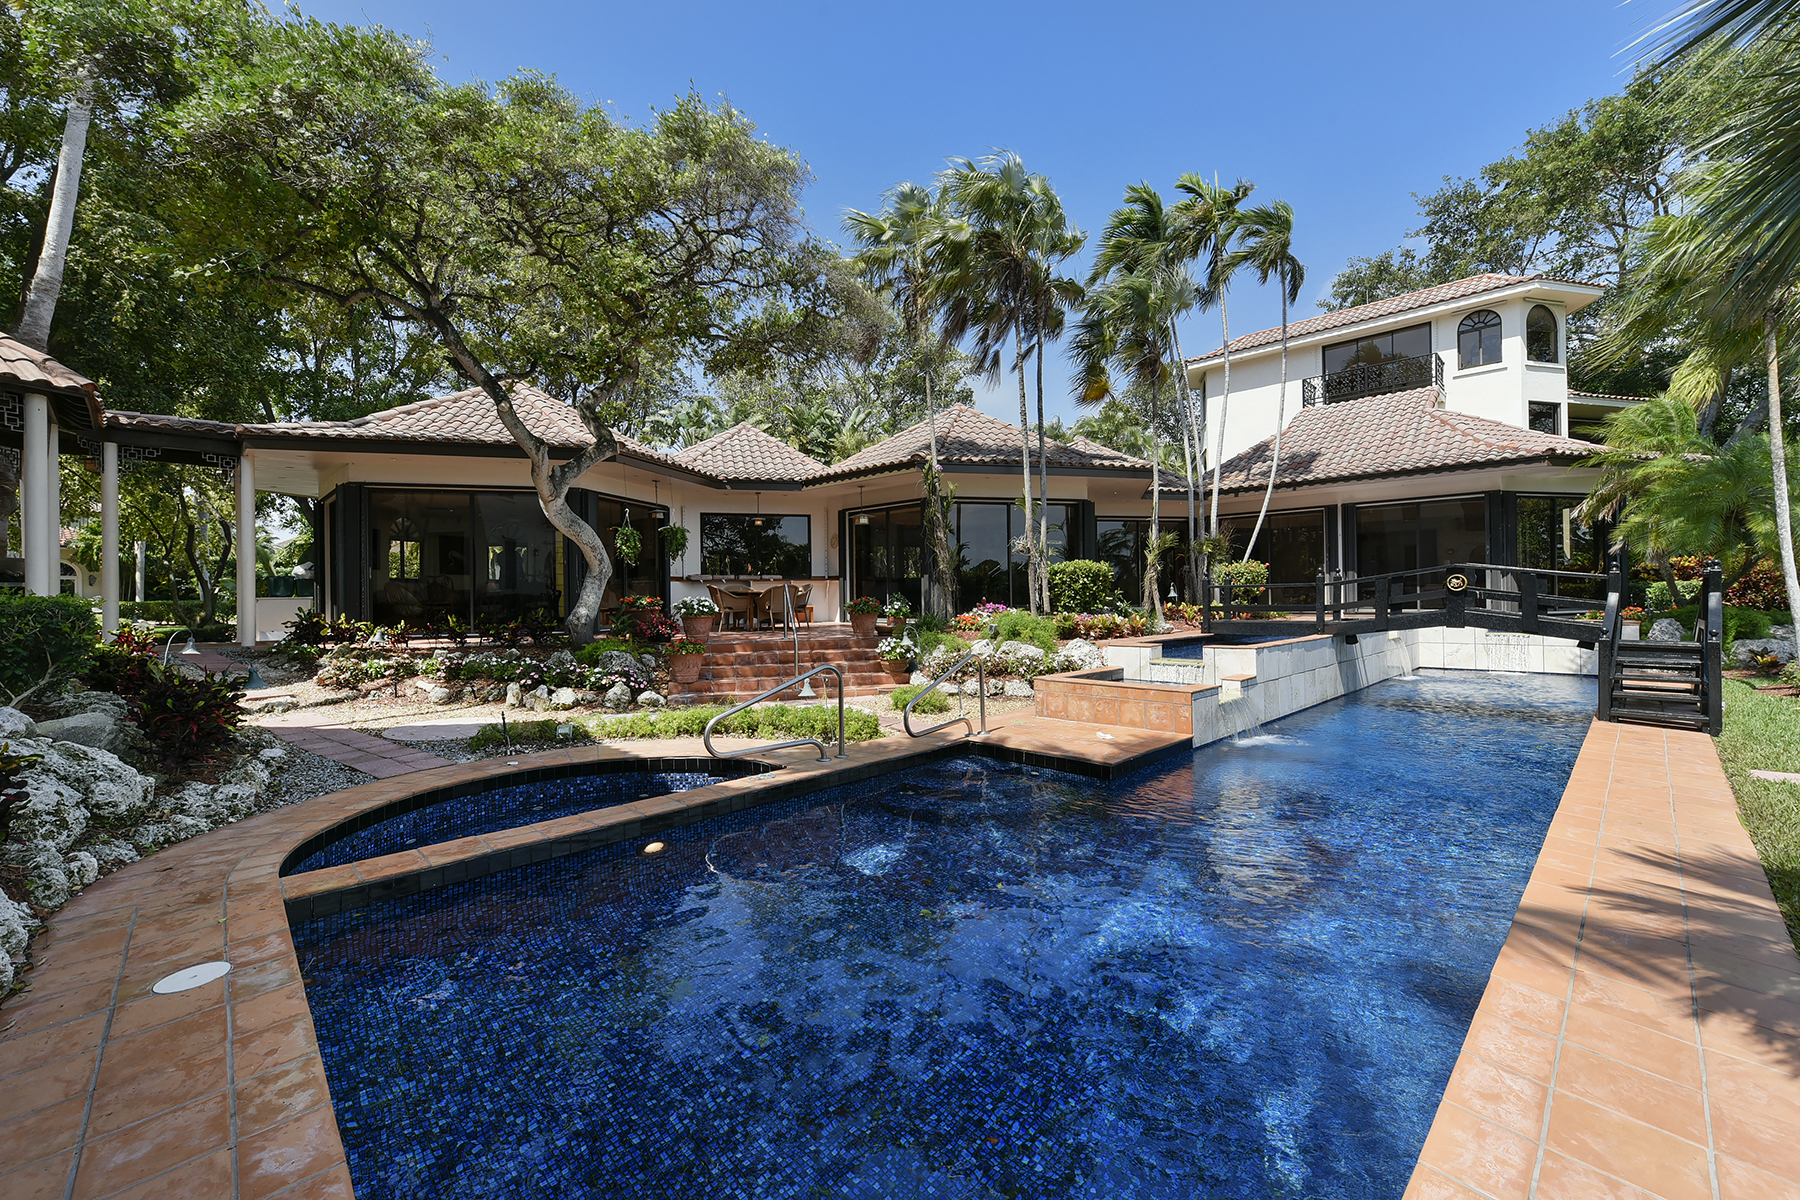 Single Family Home for Sale at Architecturally Stunning Waterfront Home at Ocean Reef 44 Cardinal Lane Ocean Reef Community, Key Largo, Florida, 33037 United States